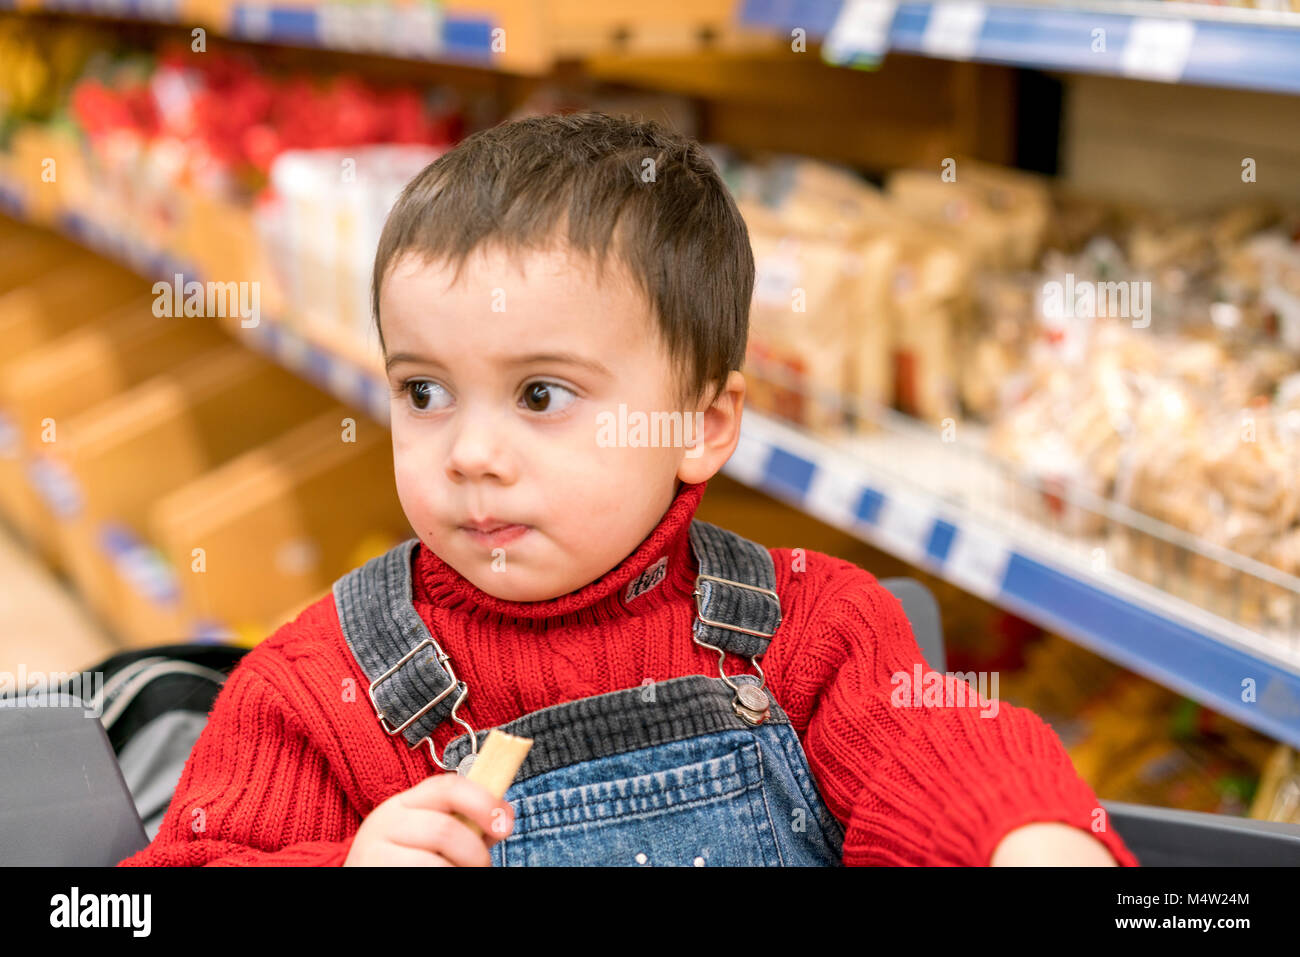 Boy 2 years in a store on the background of bread. - Stock Image